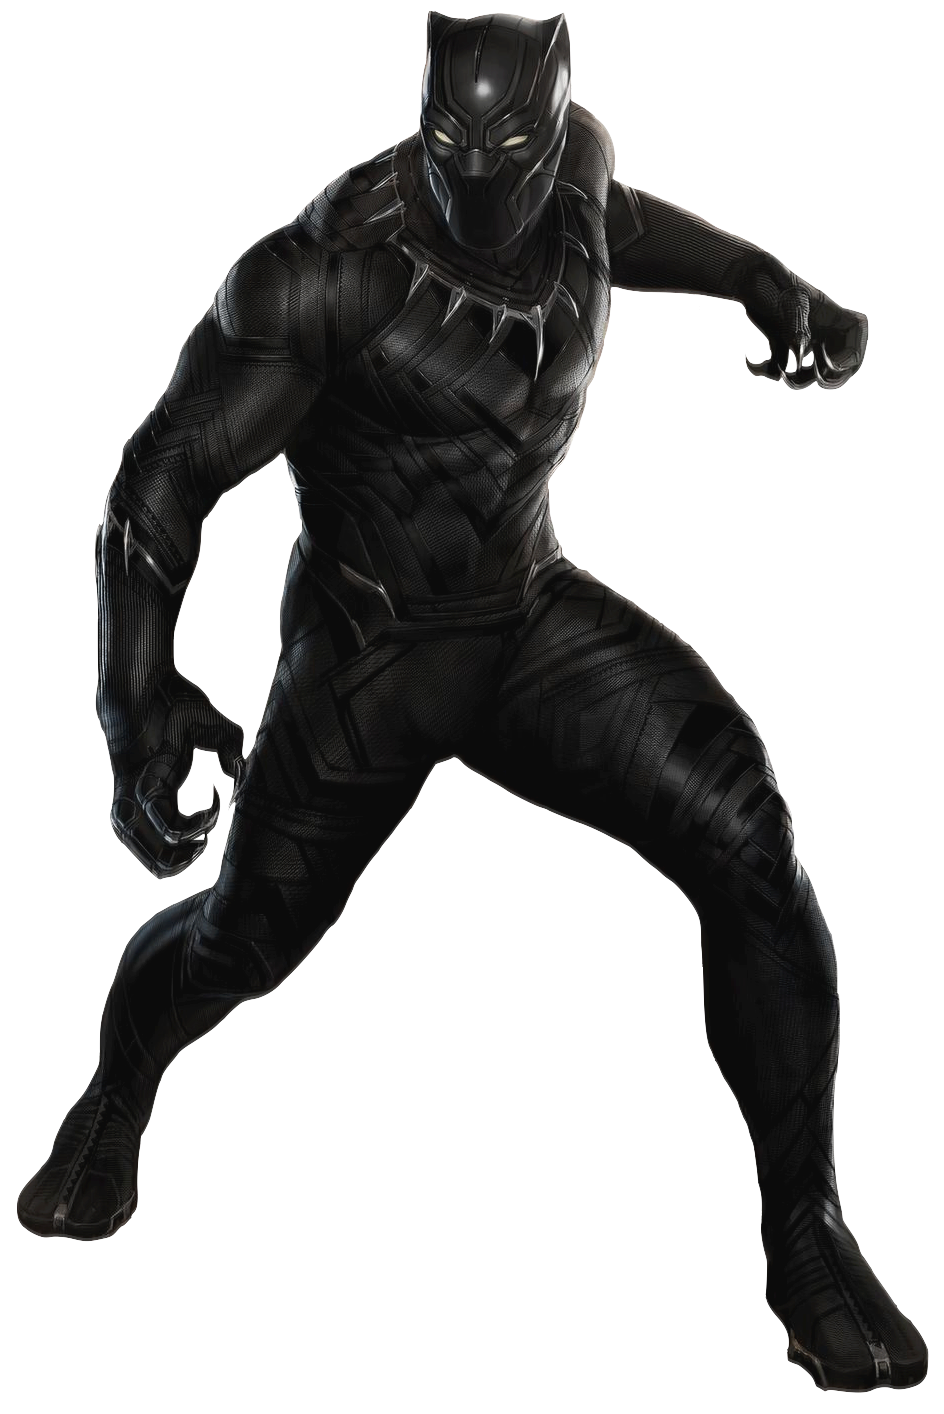 costume drawing black panther